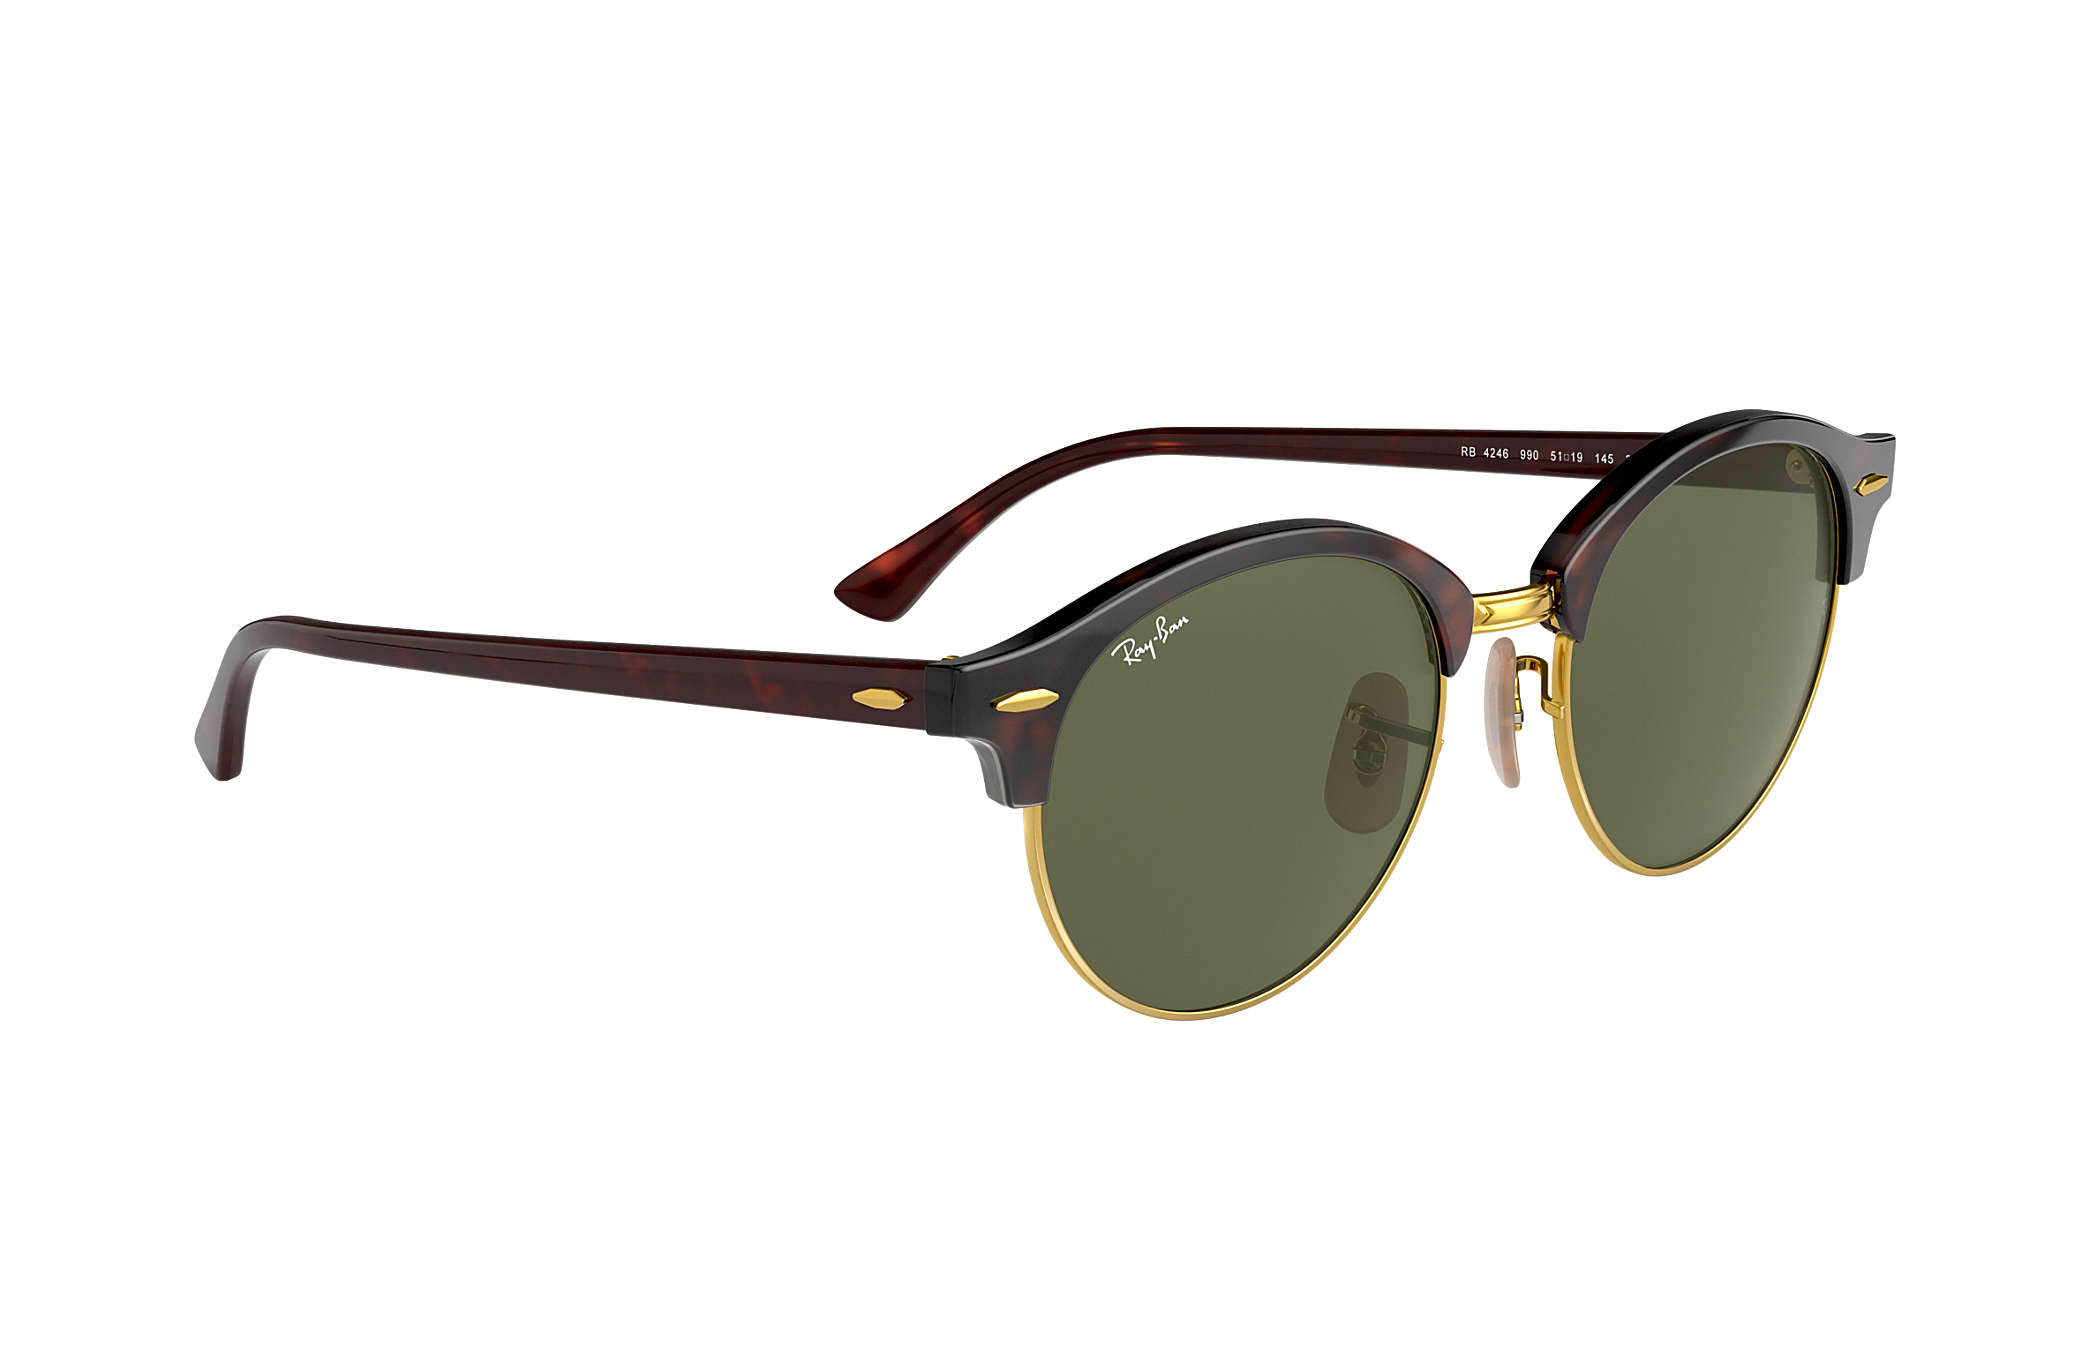 42515454f7 Ray-Ban Clubround Classic RB4246 Tortoise - Acetate - Green Lenses ...